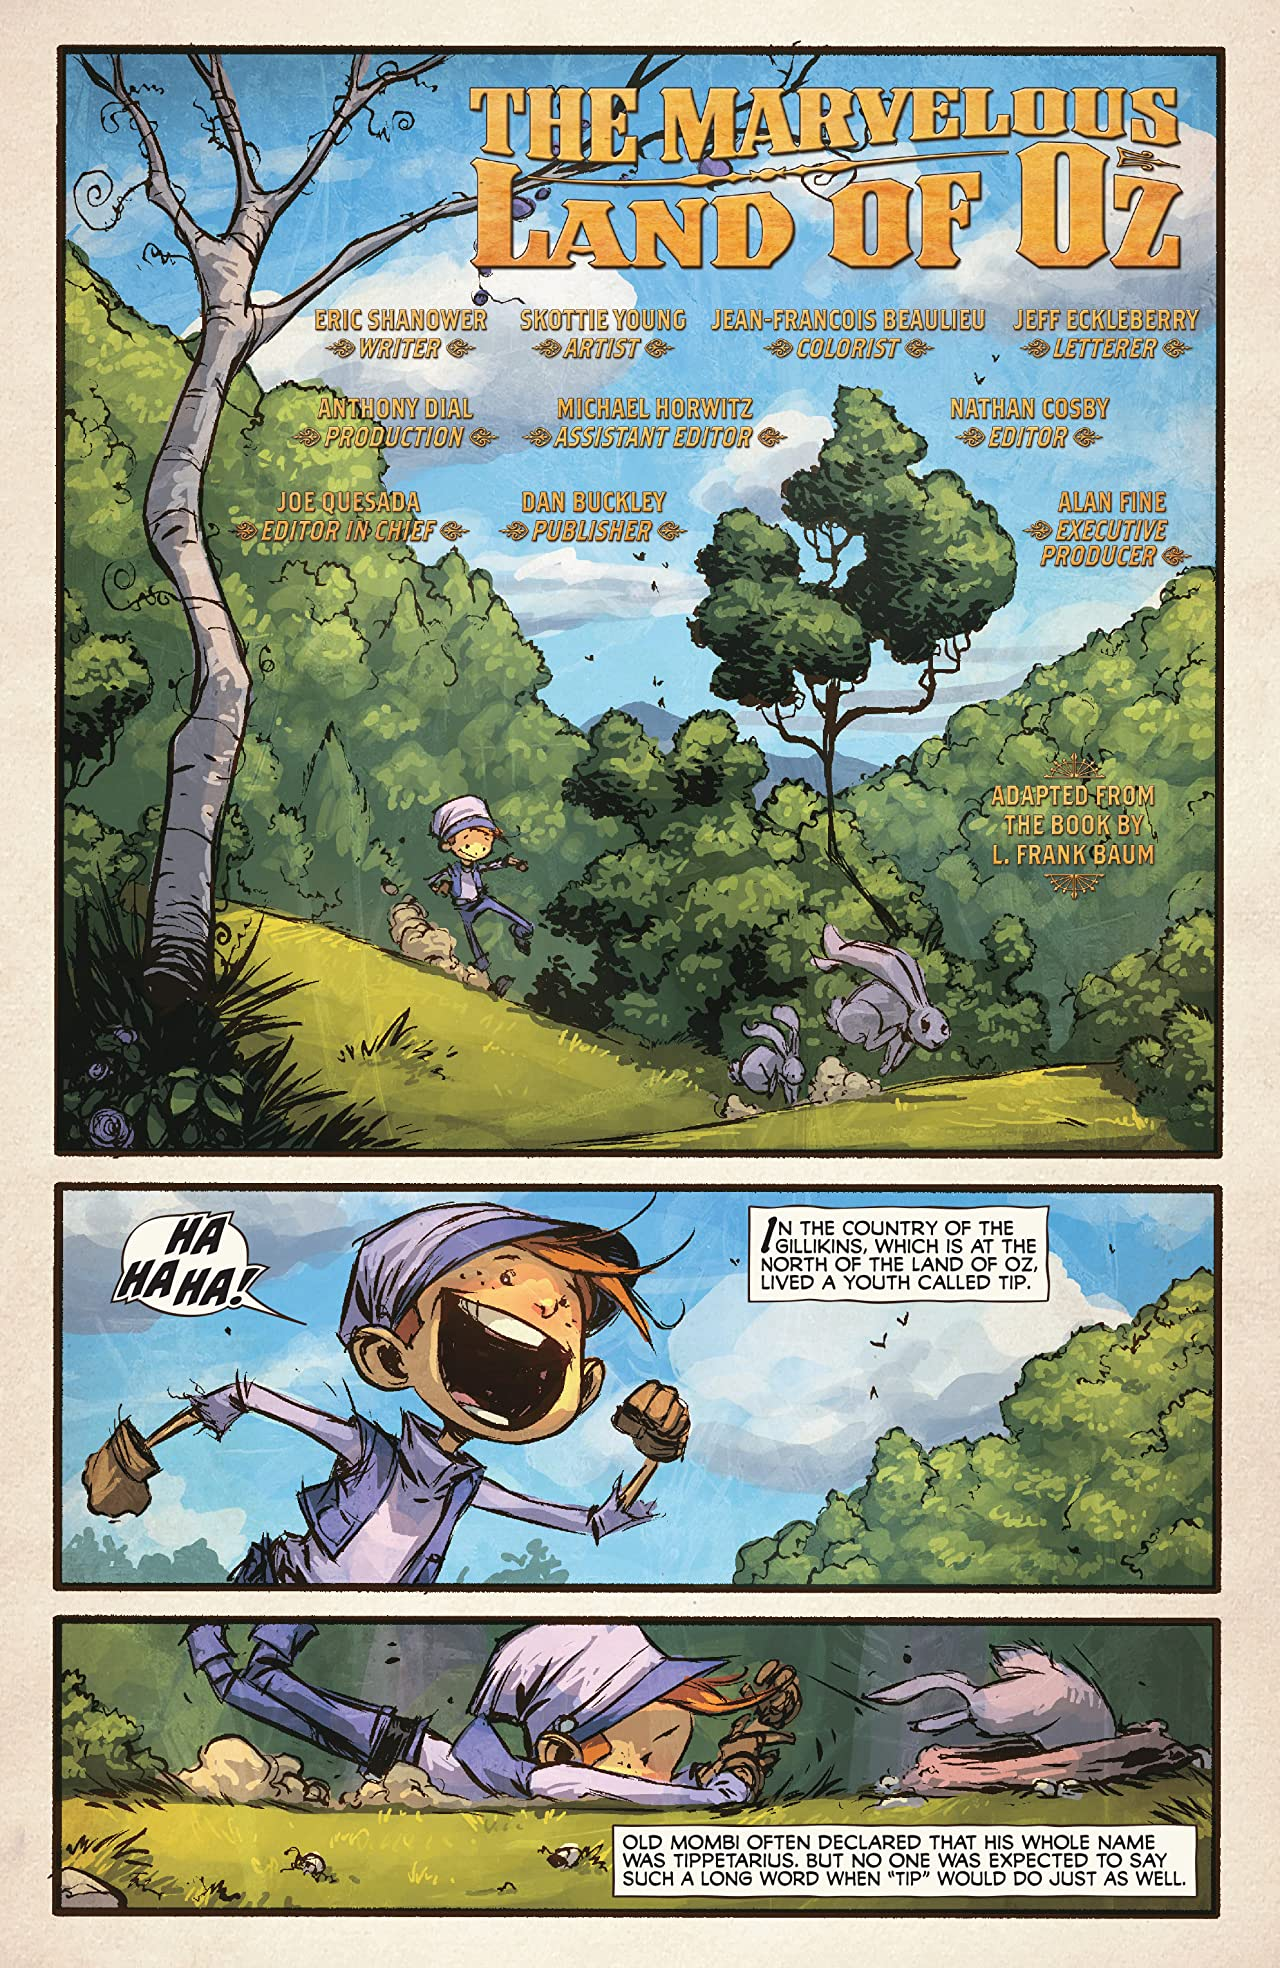 Marvelous Land of Oz (2009-2010) #1 (of 8)